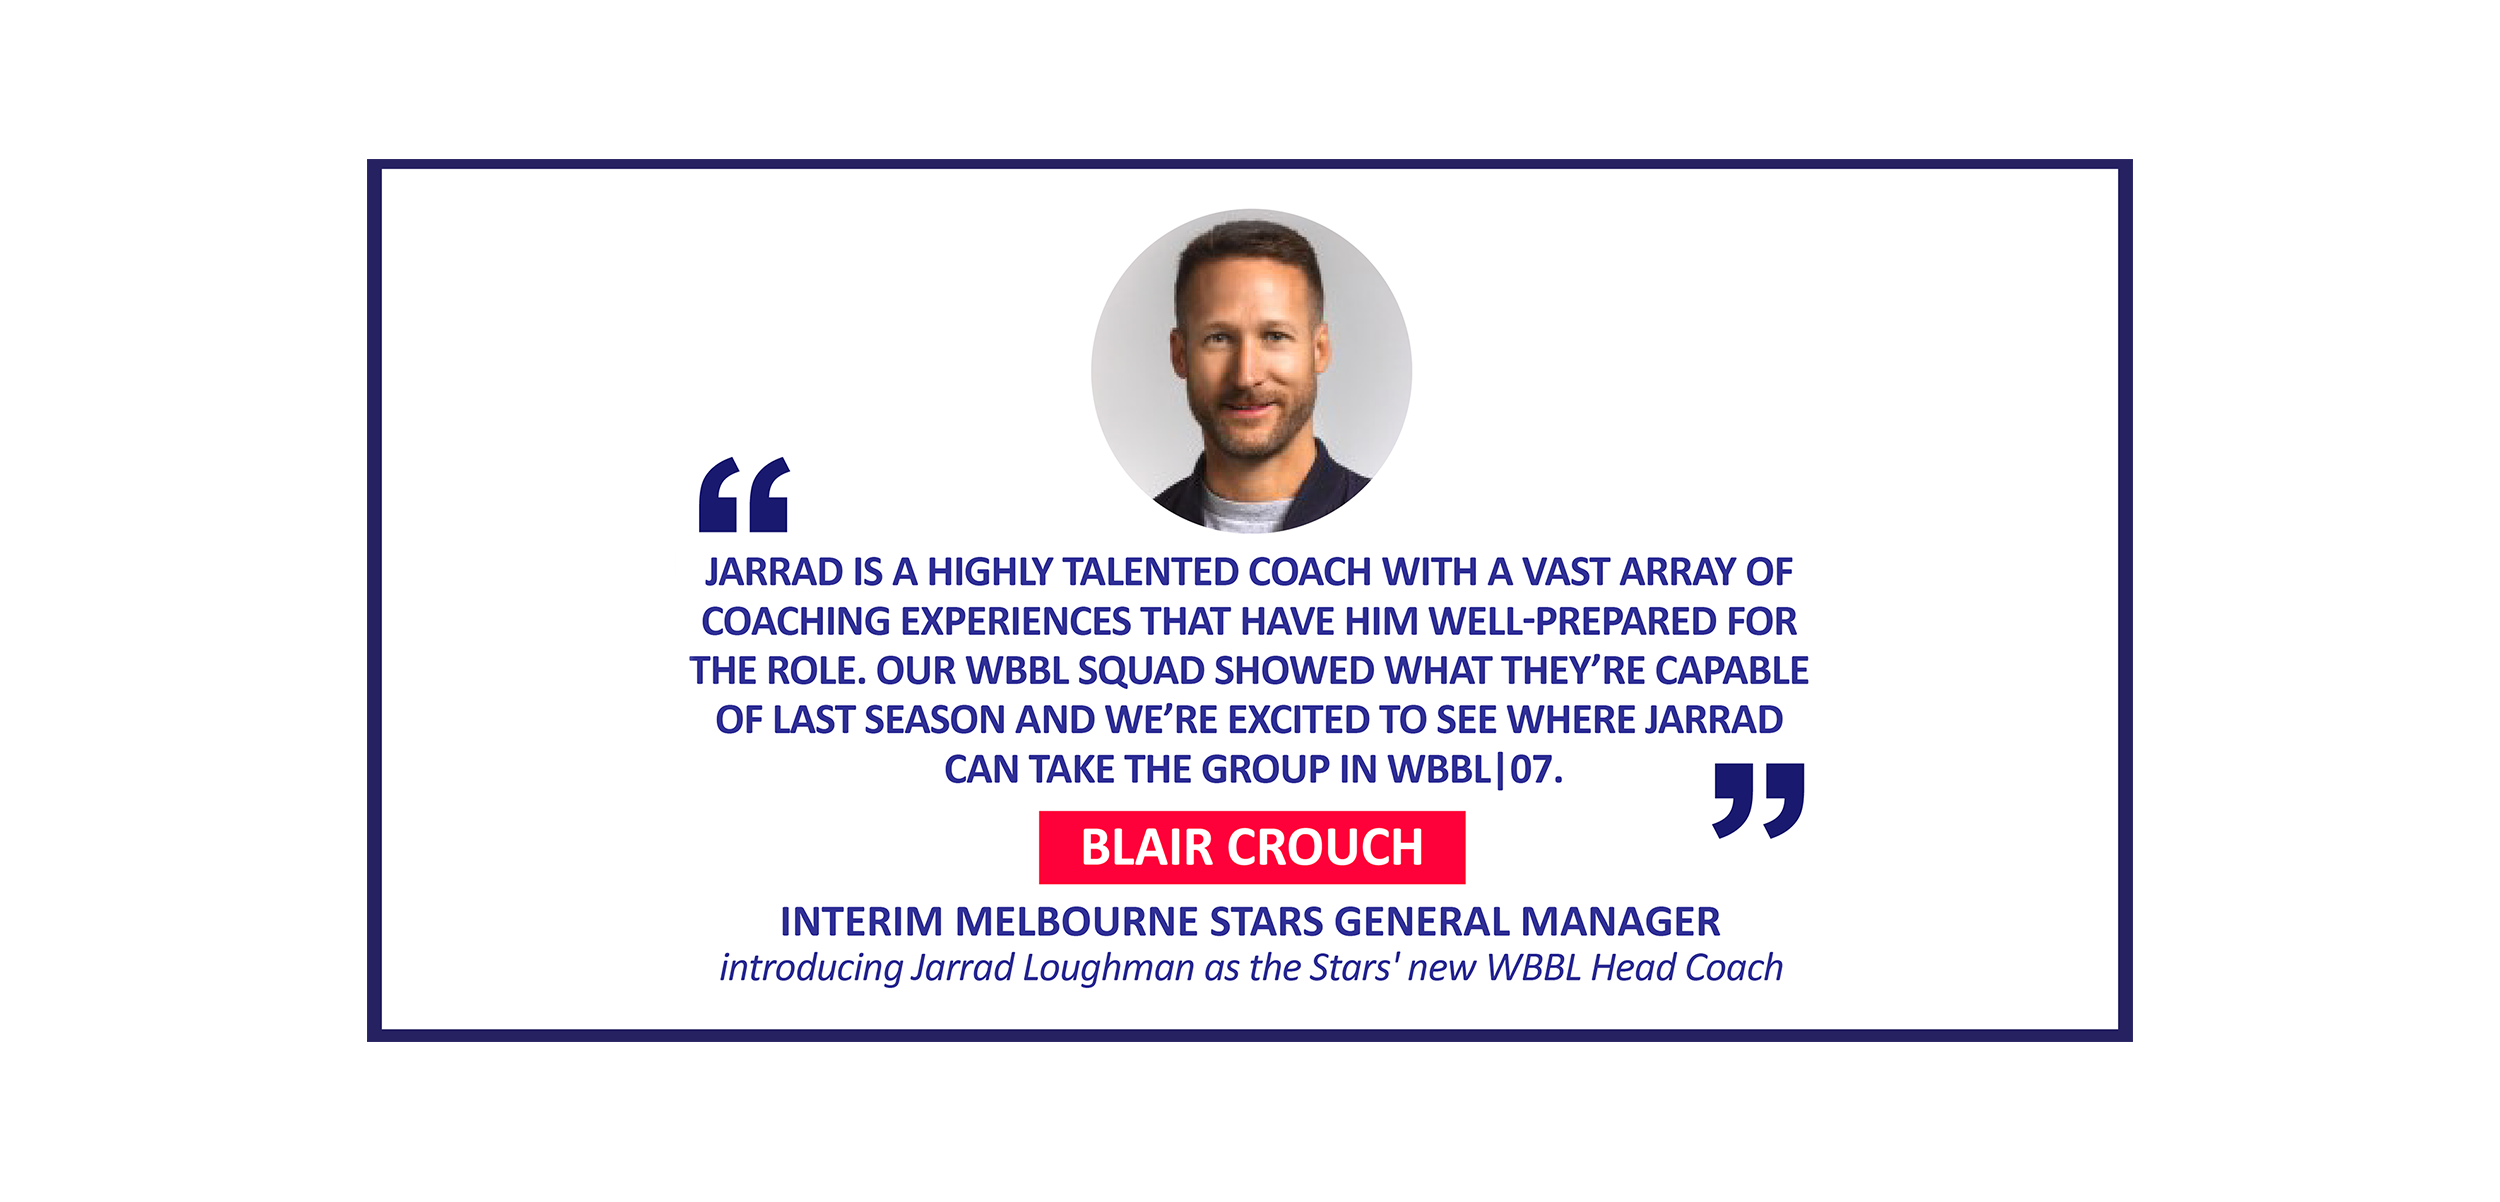 Blair Crouch, Interim Melbourne Stars General Manager introducing Jarrad Loughman as the Stars' new WBBL Head Coach